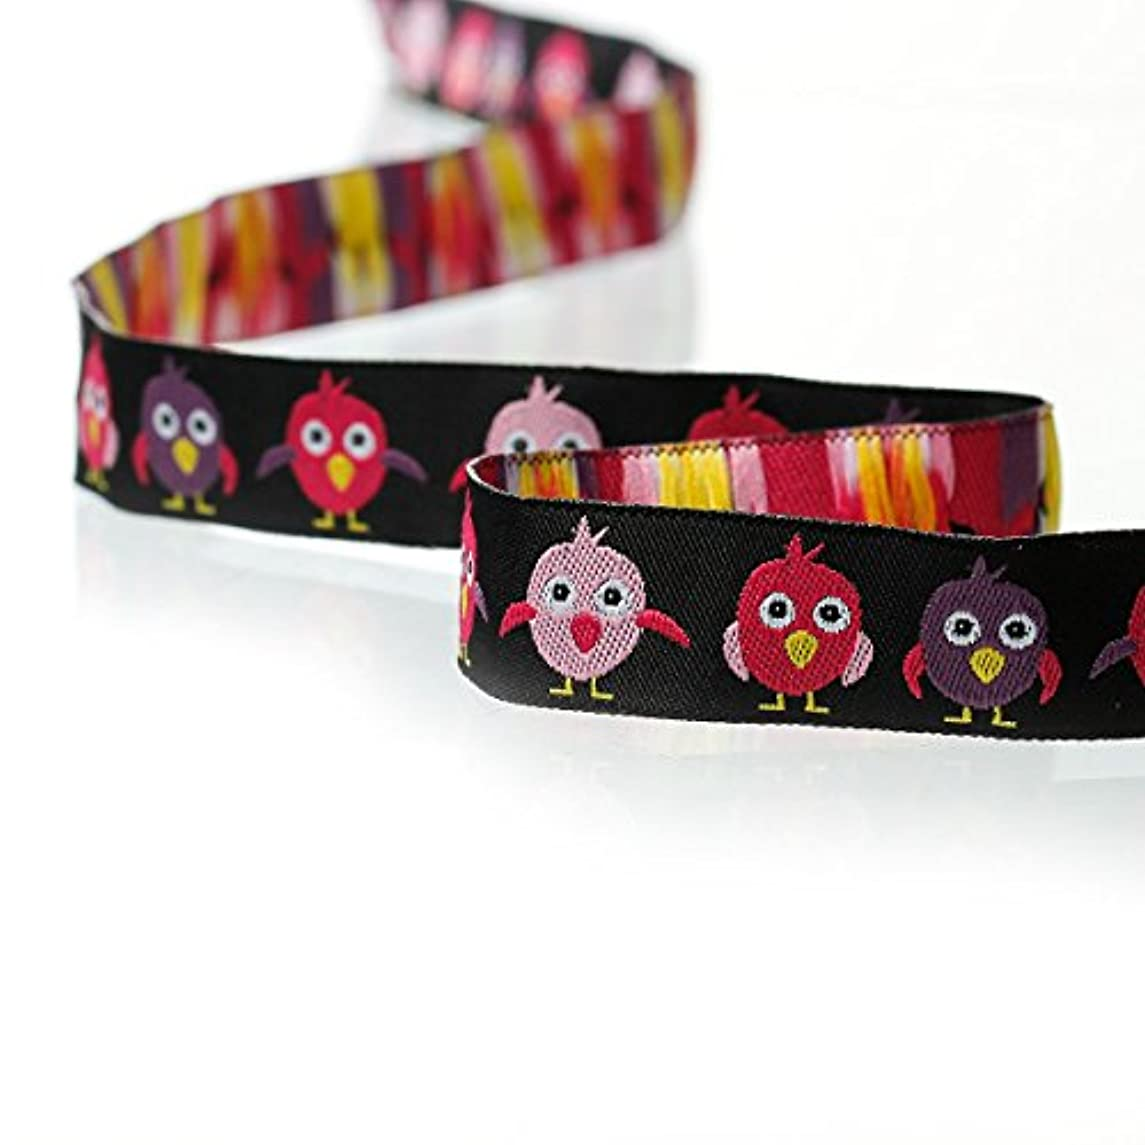 PEPPERLONELY 2 Meter Birds Printed Embroidered Woven Label Ribbon 16mm (5/8 Inch)